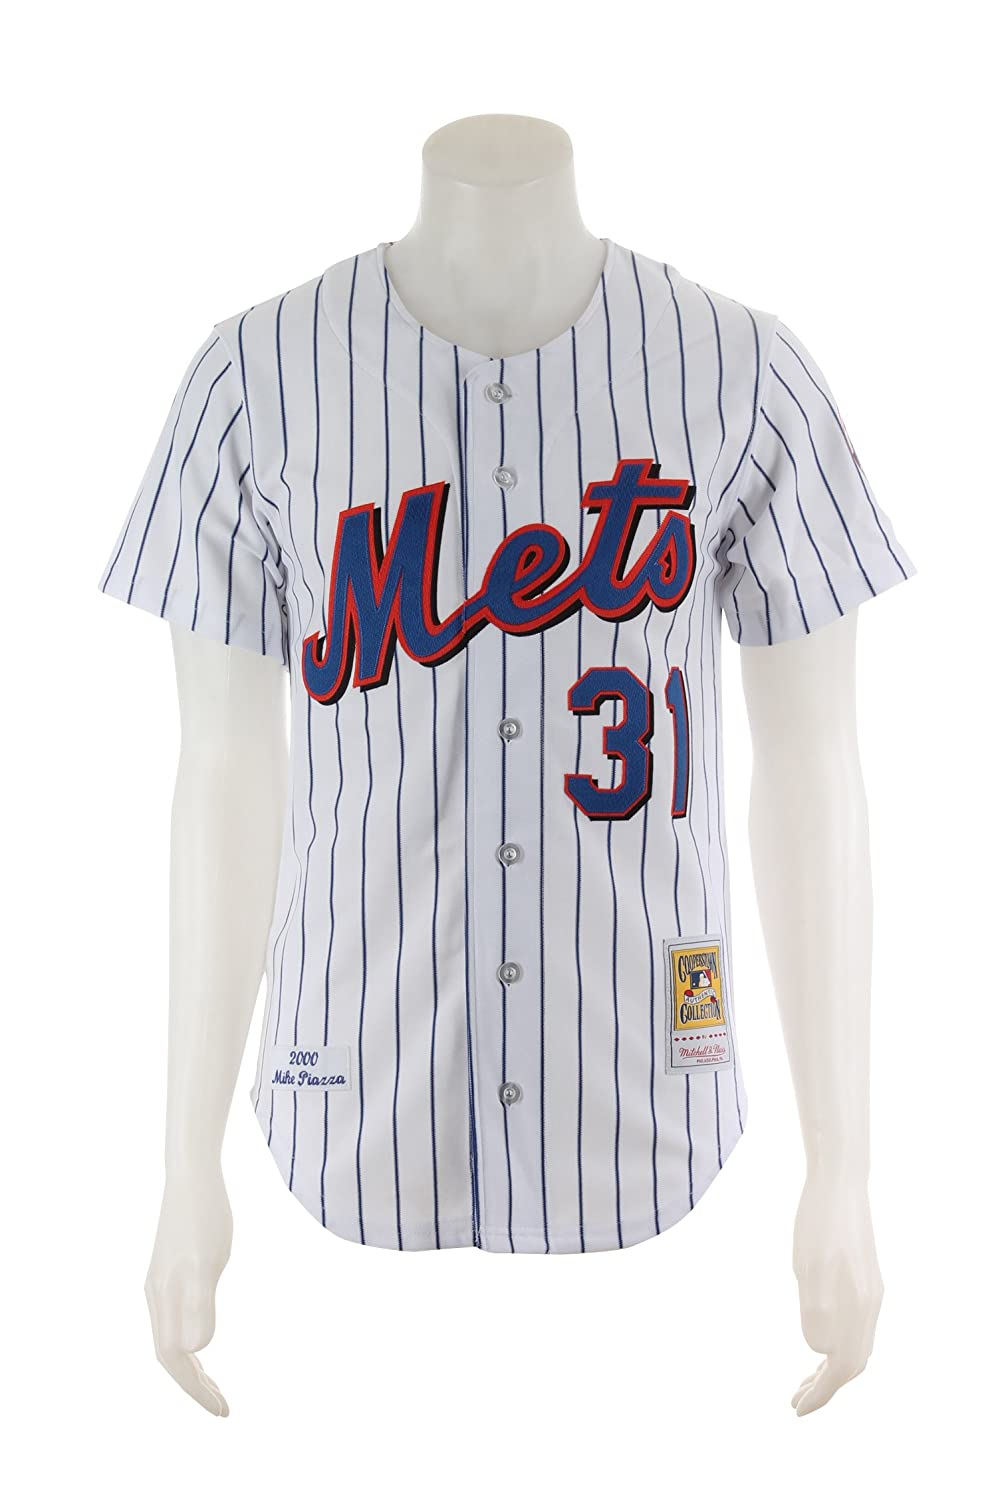 detailed look cf4bf 4aa1b Amazon.com : Mitchell & Ness Mike Piazza New York Mets ...